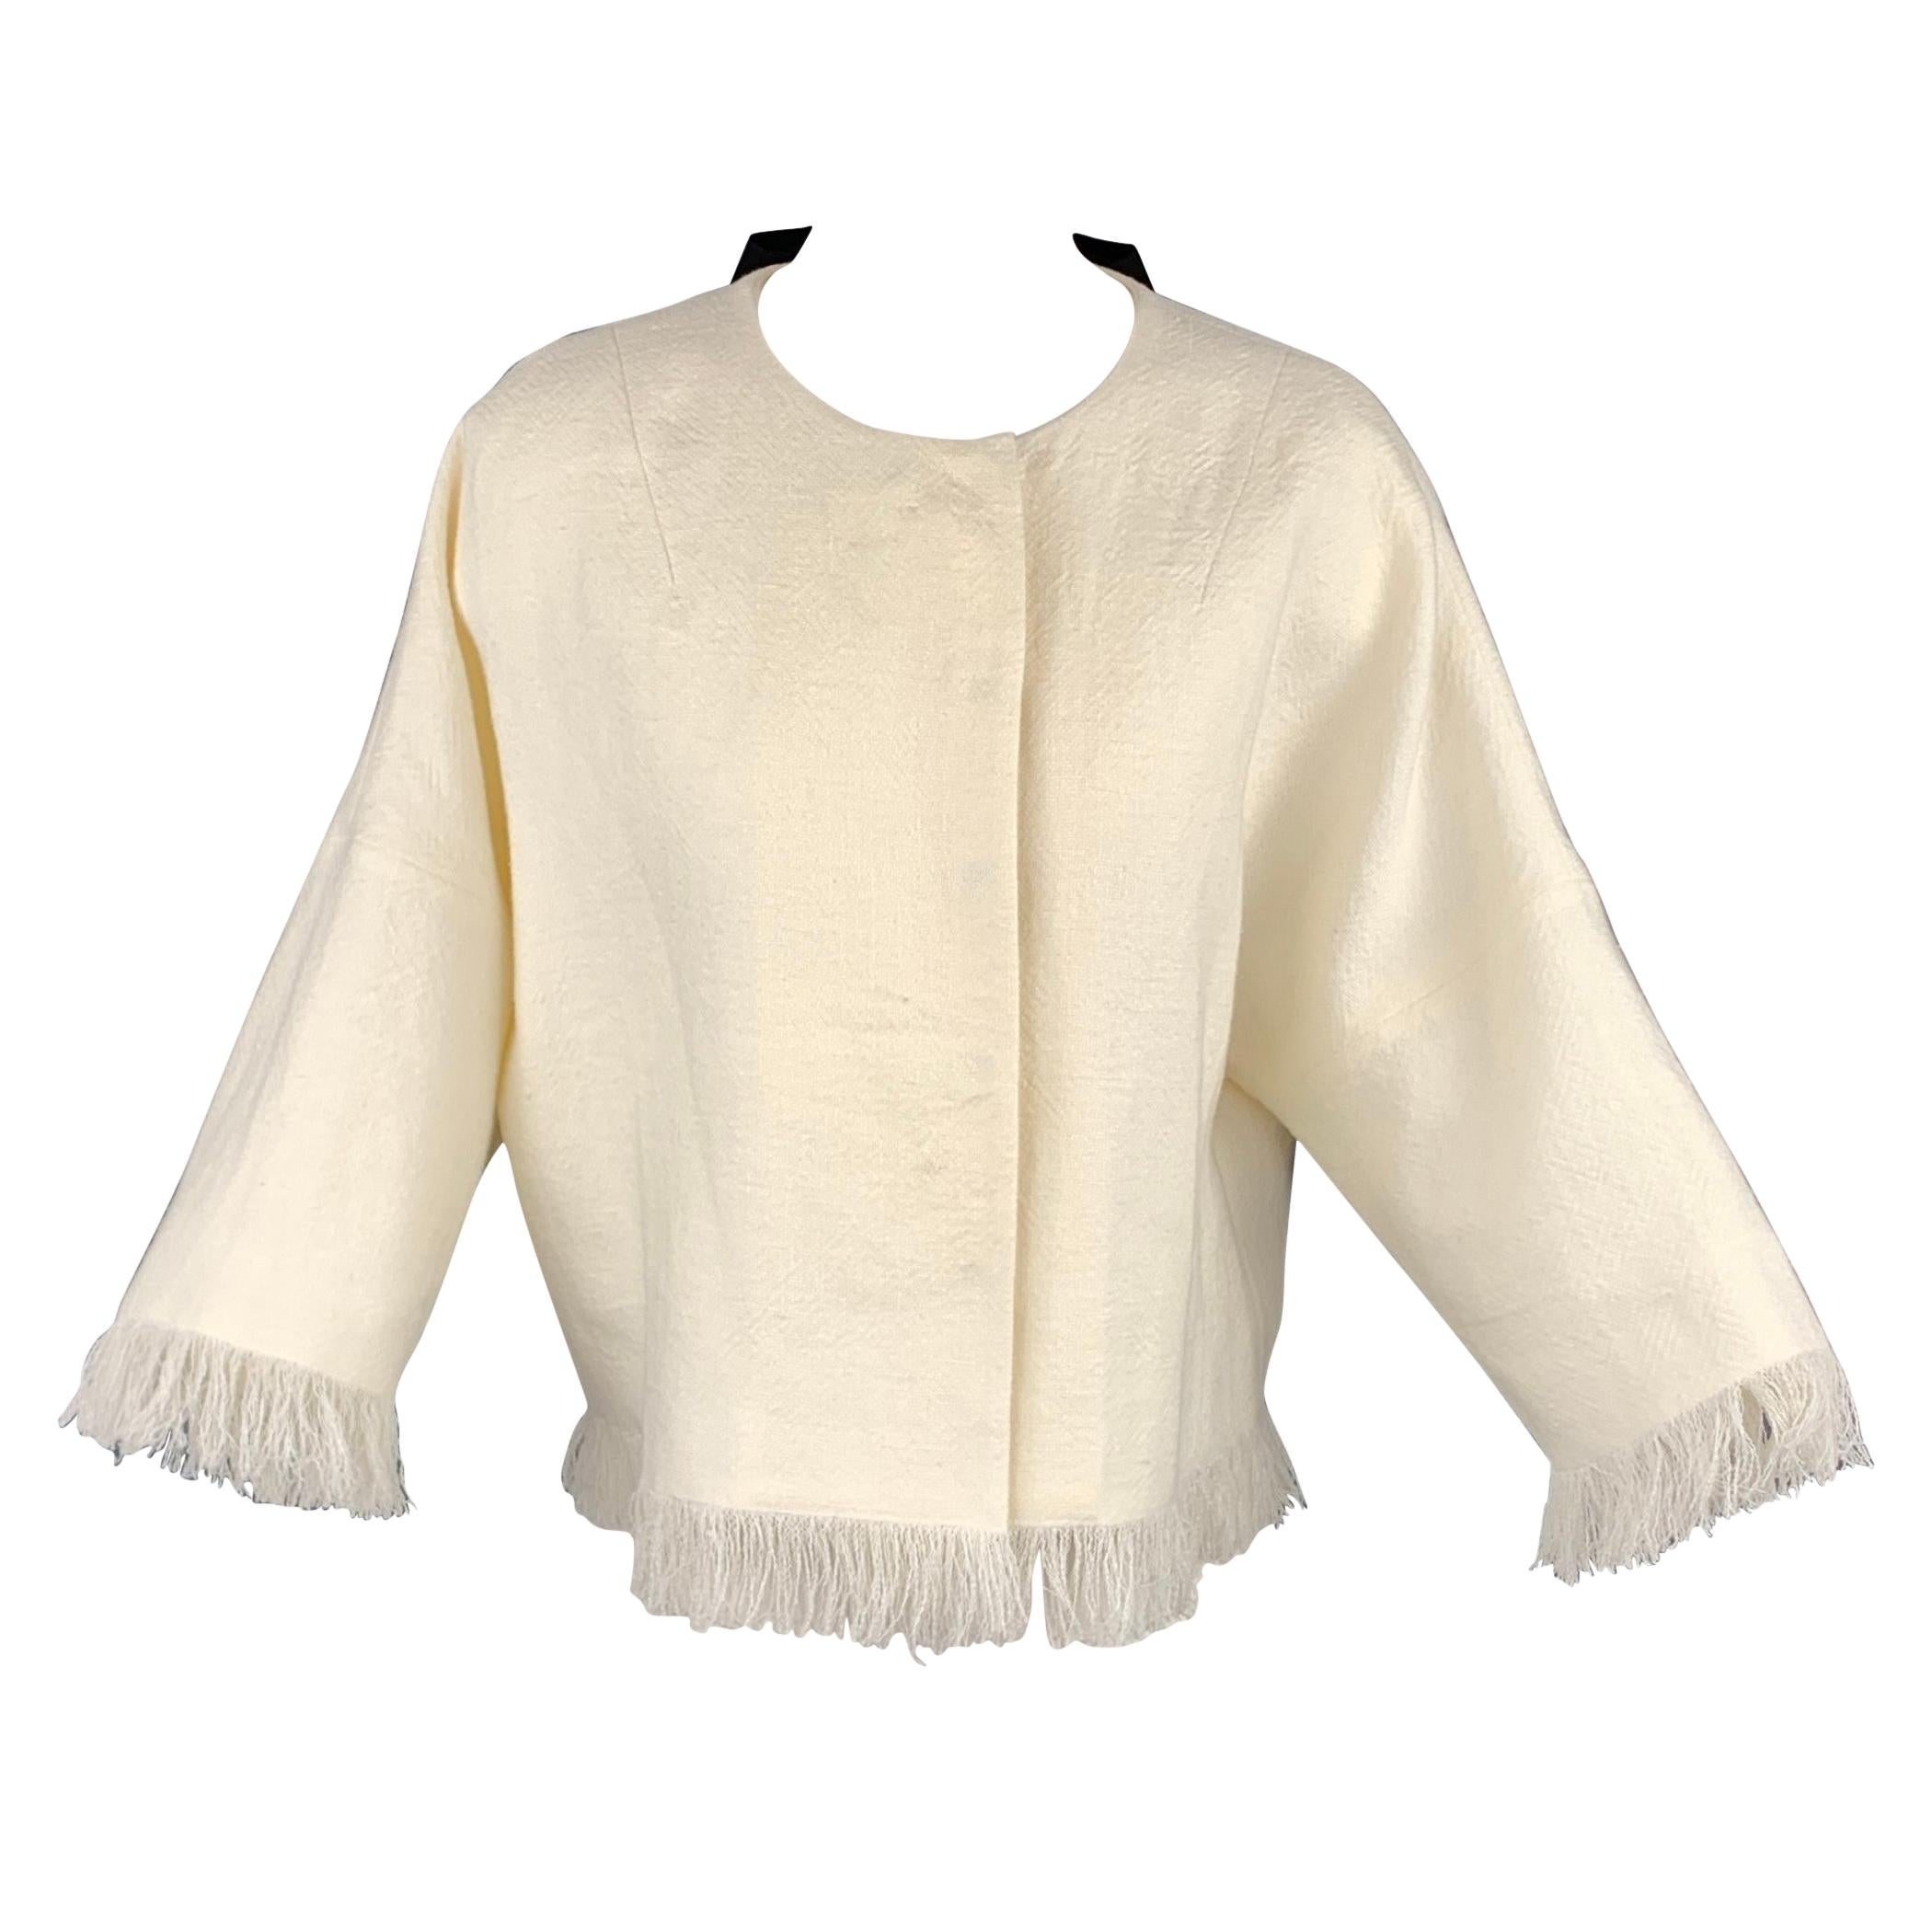 Andrew Gn Jackets